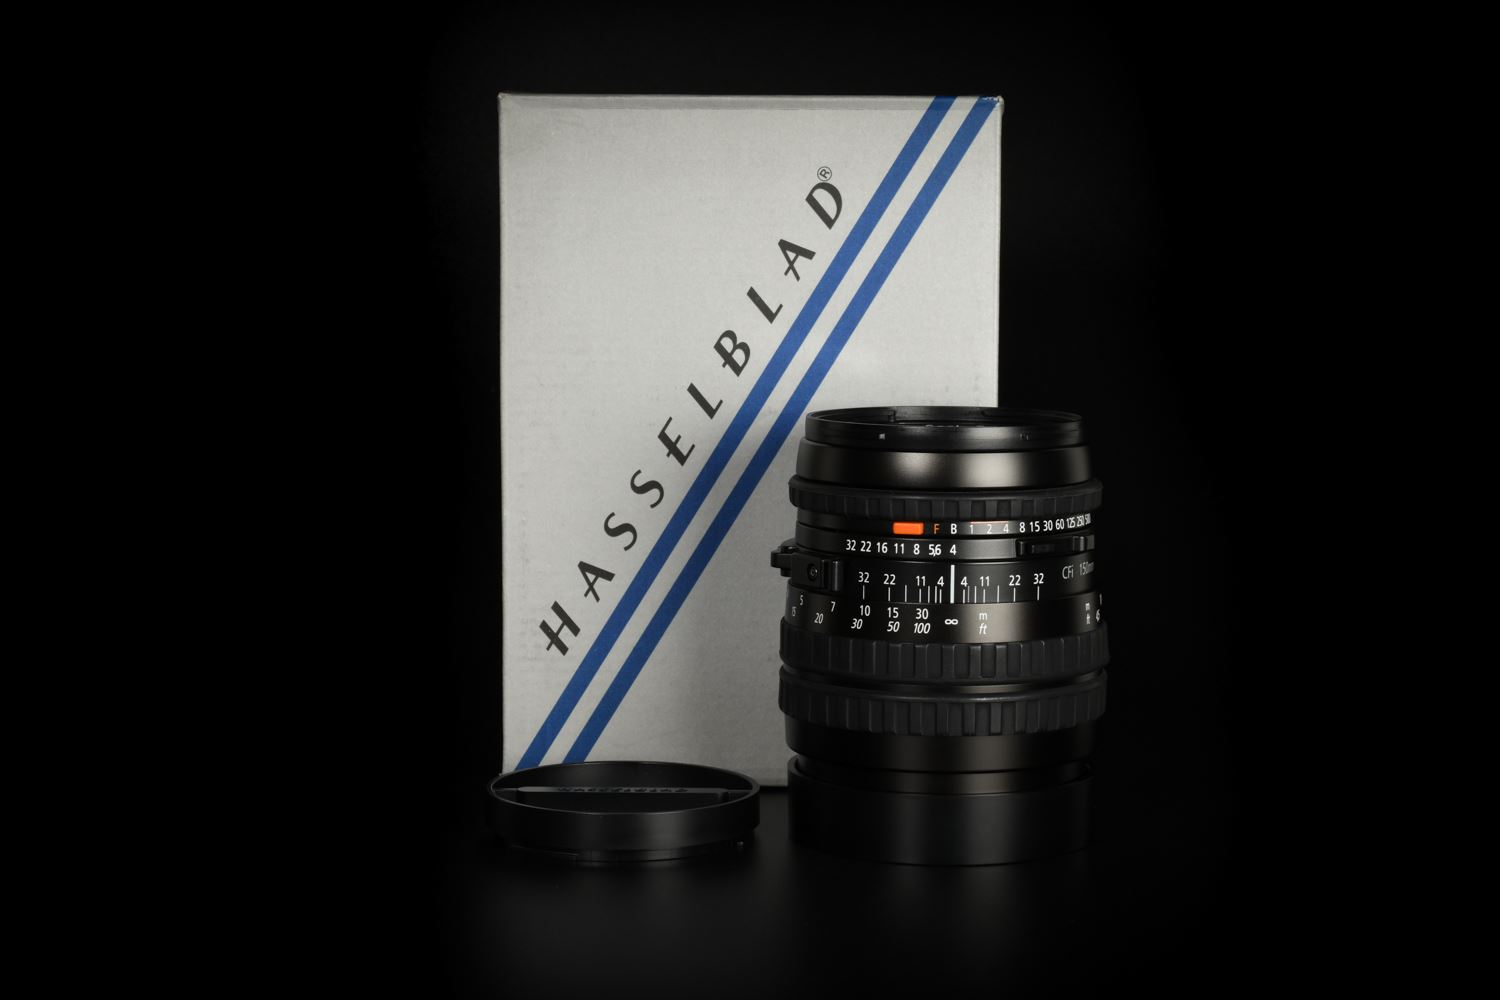 Picture of Hasselblad Cfi Sonnar 150mm f/4